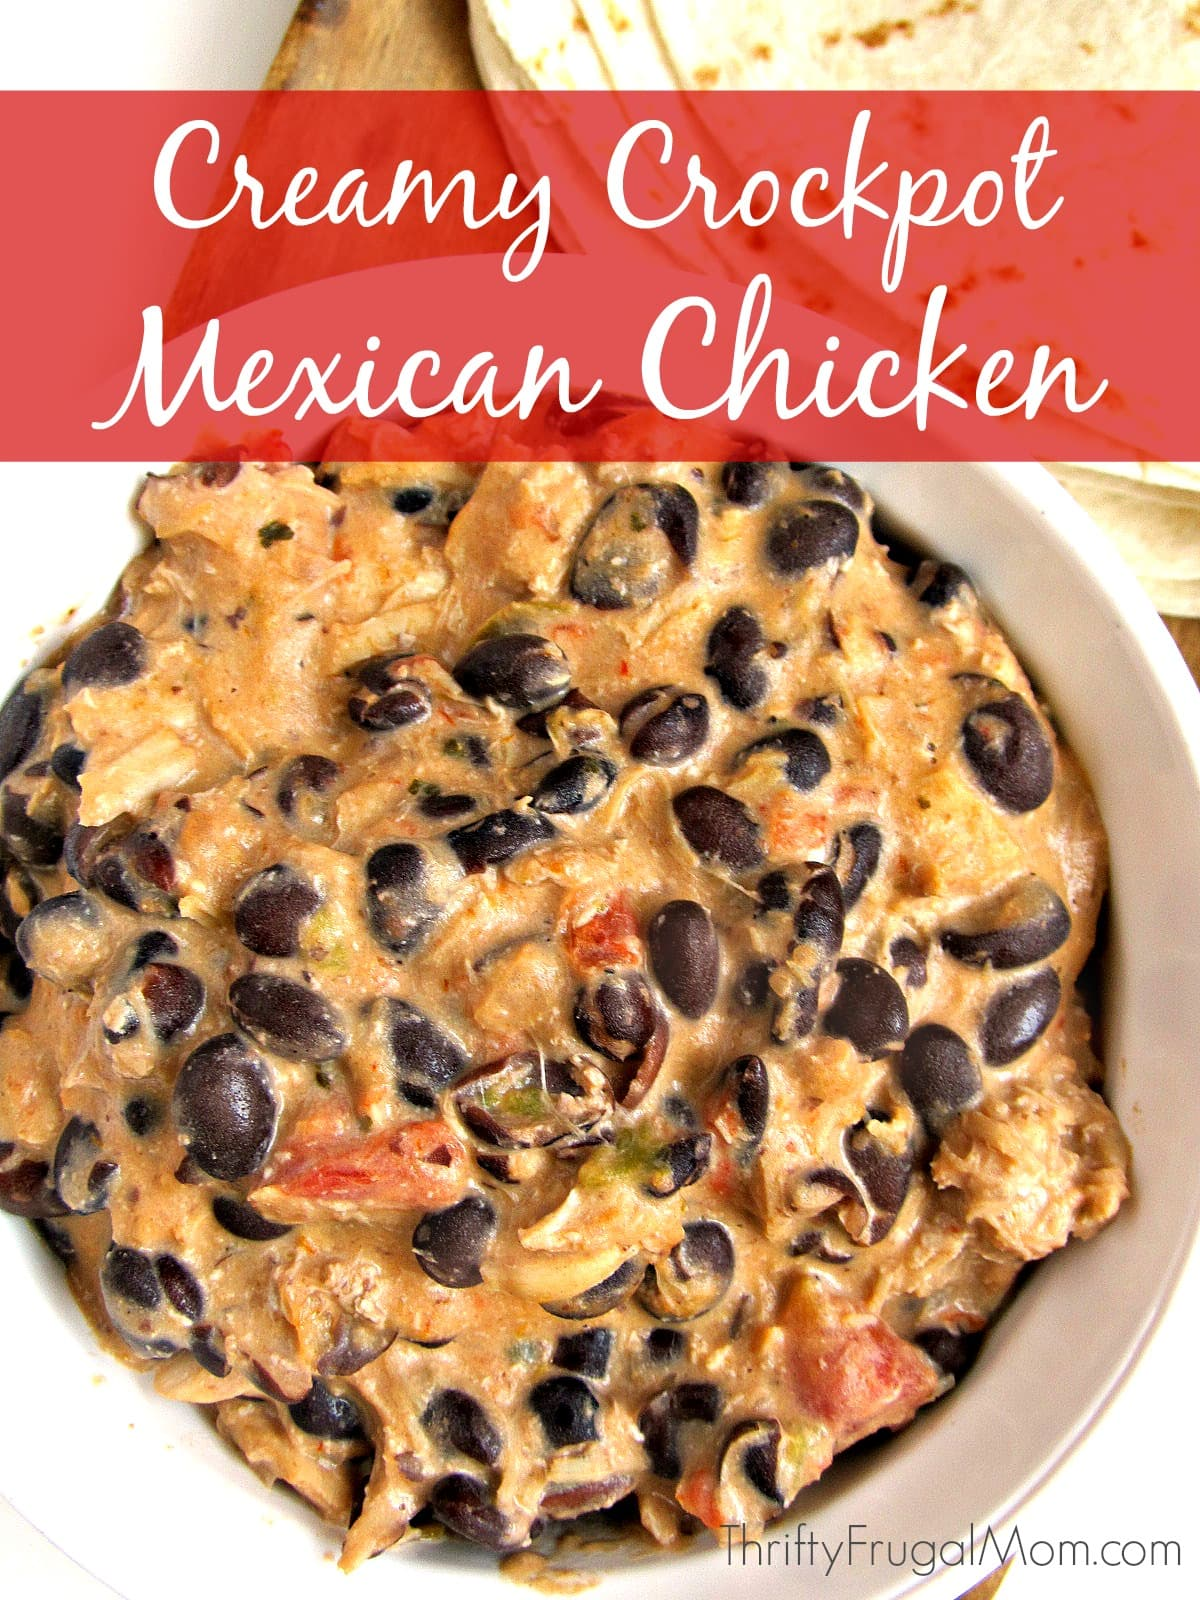 Short on time? This easy crockpot chicken recipe is one of the simplest recipes you'll ever make! Plus it's also delicious, filling and inexpensive. No wonder it's a favorite! #crockpot #thriftyfrugalmom #chickenrecipe #easyrecipe